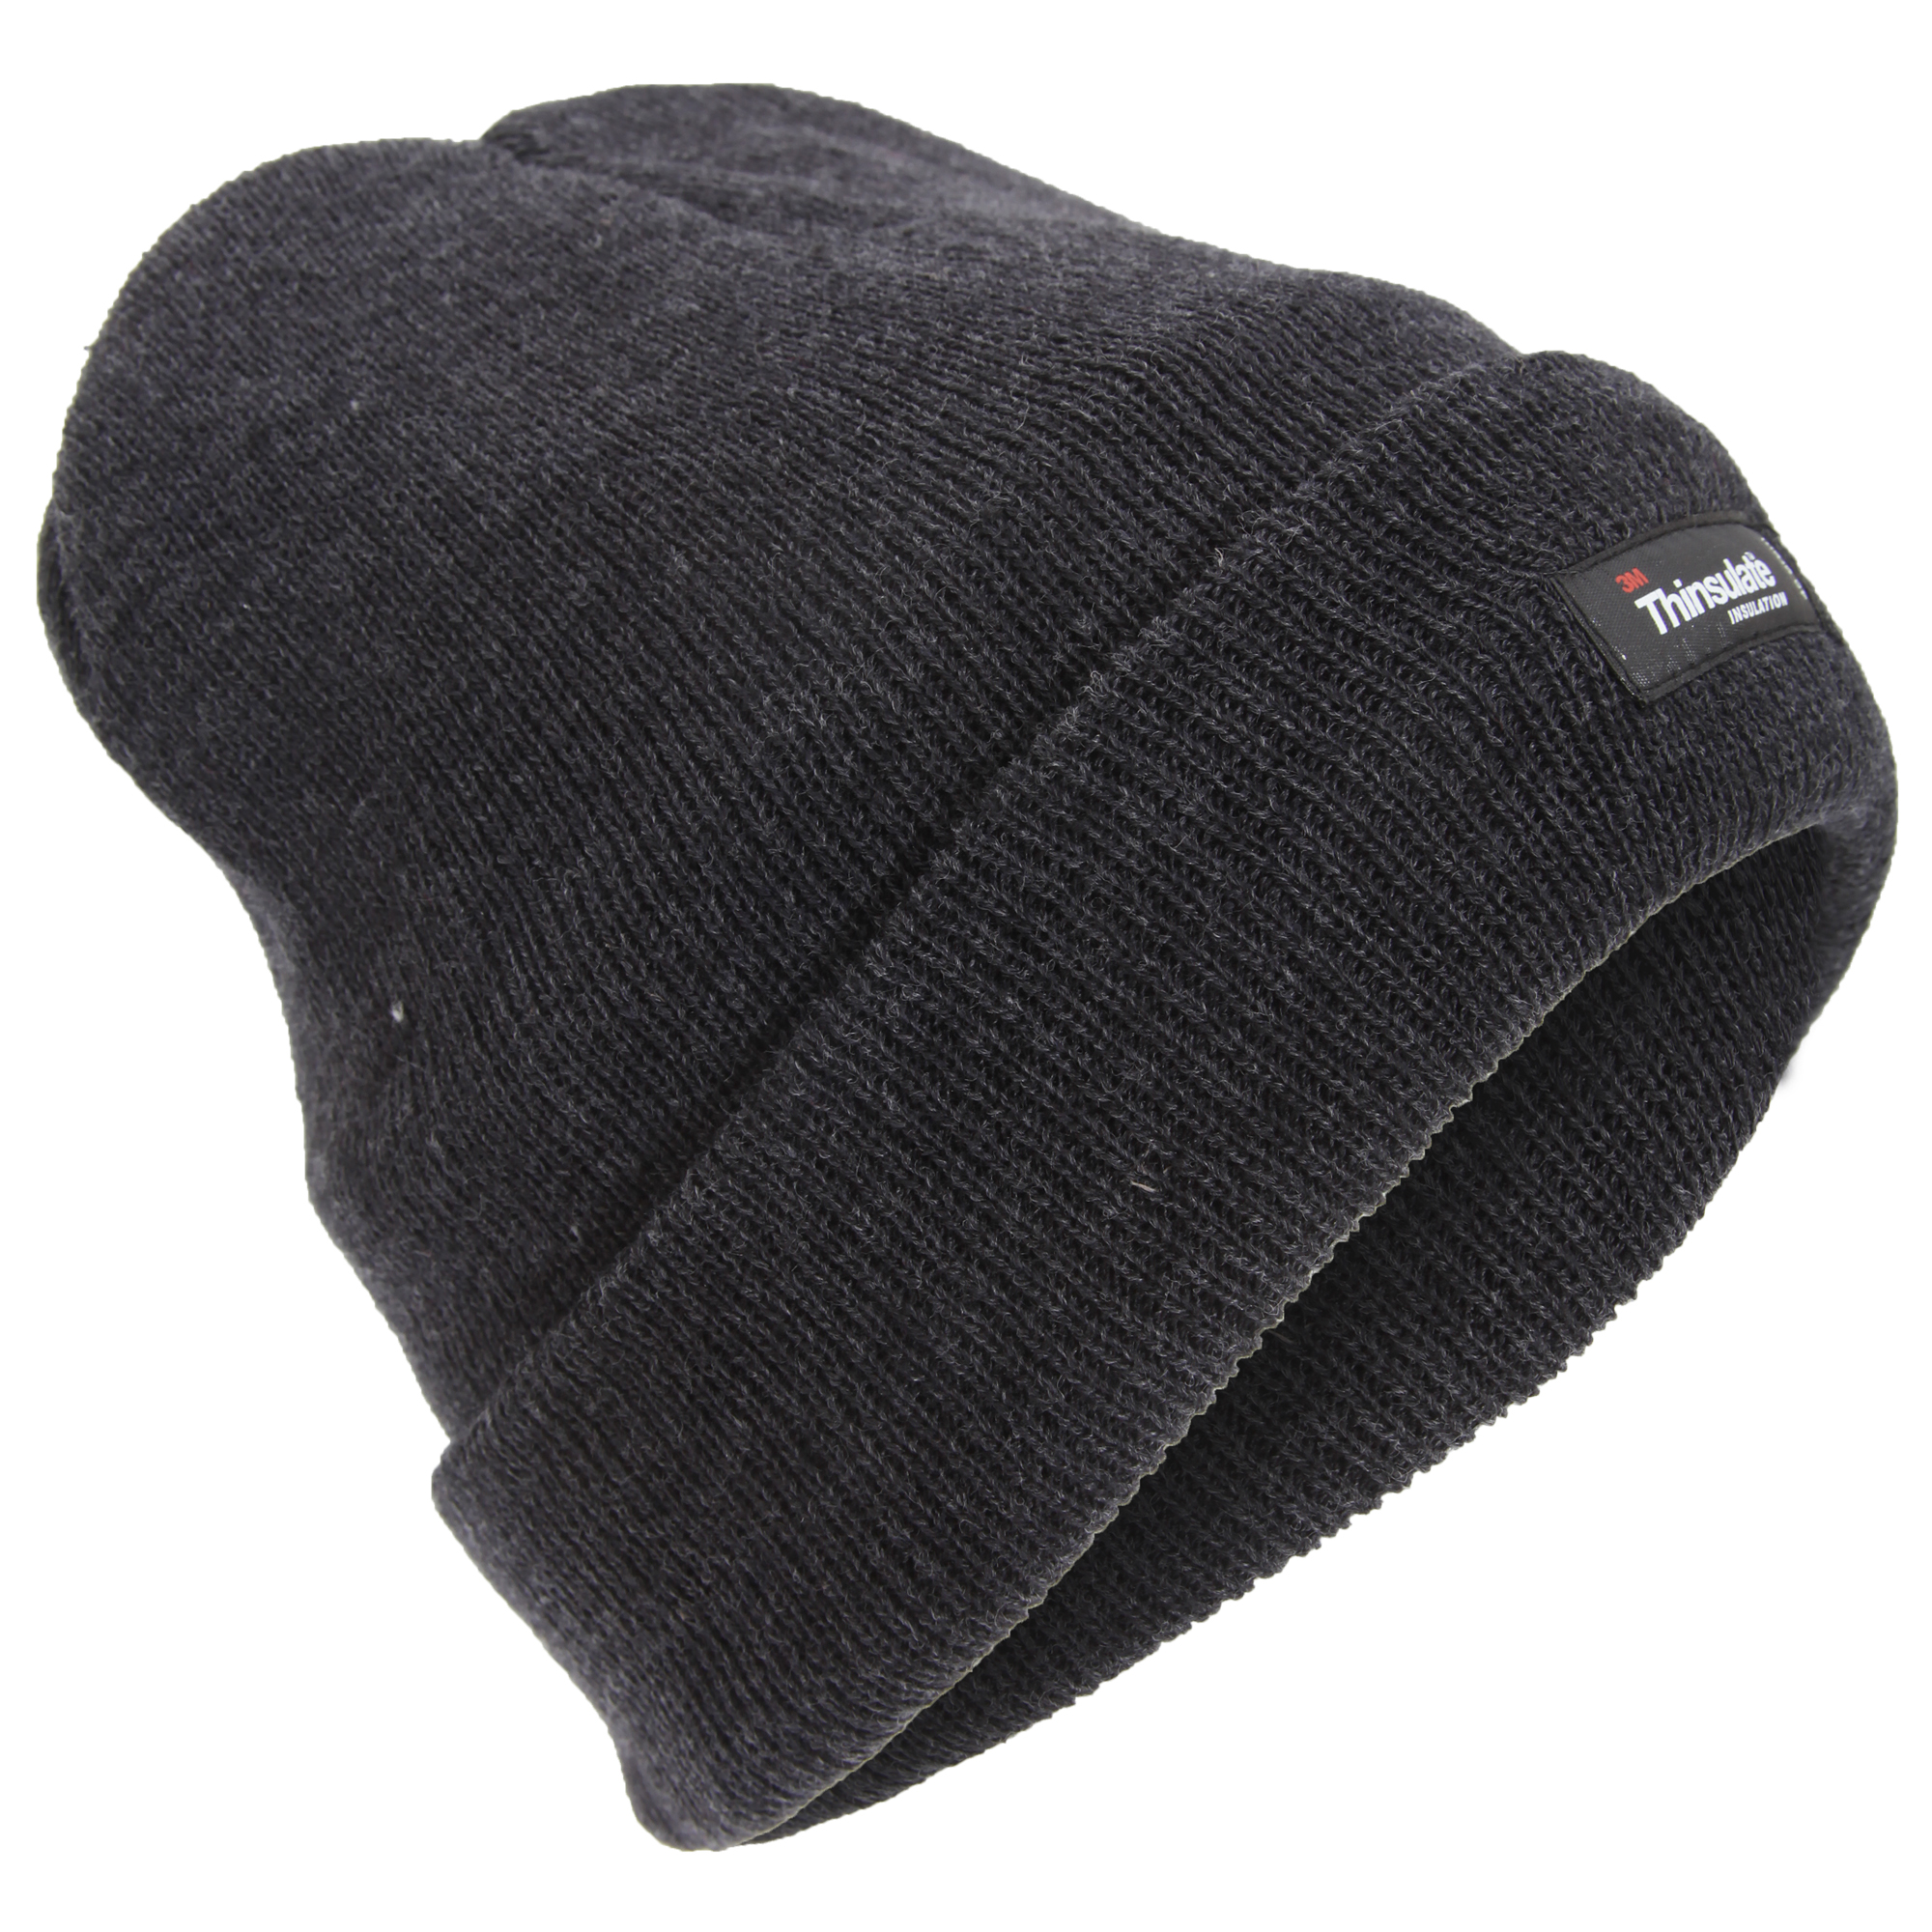 Details about Childrens Kids Thinsulate Knitted Winter Ski Hat (HA494) d8e14aae340e